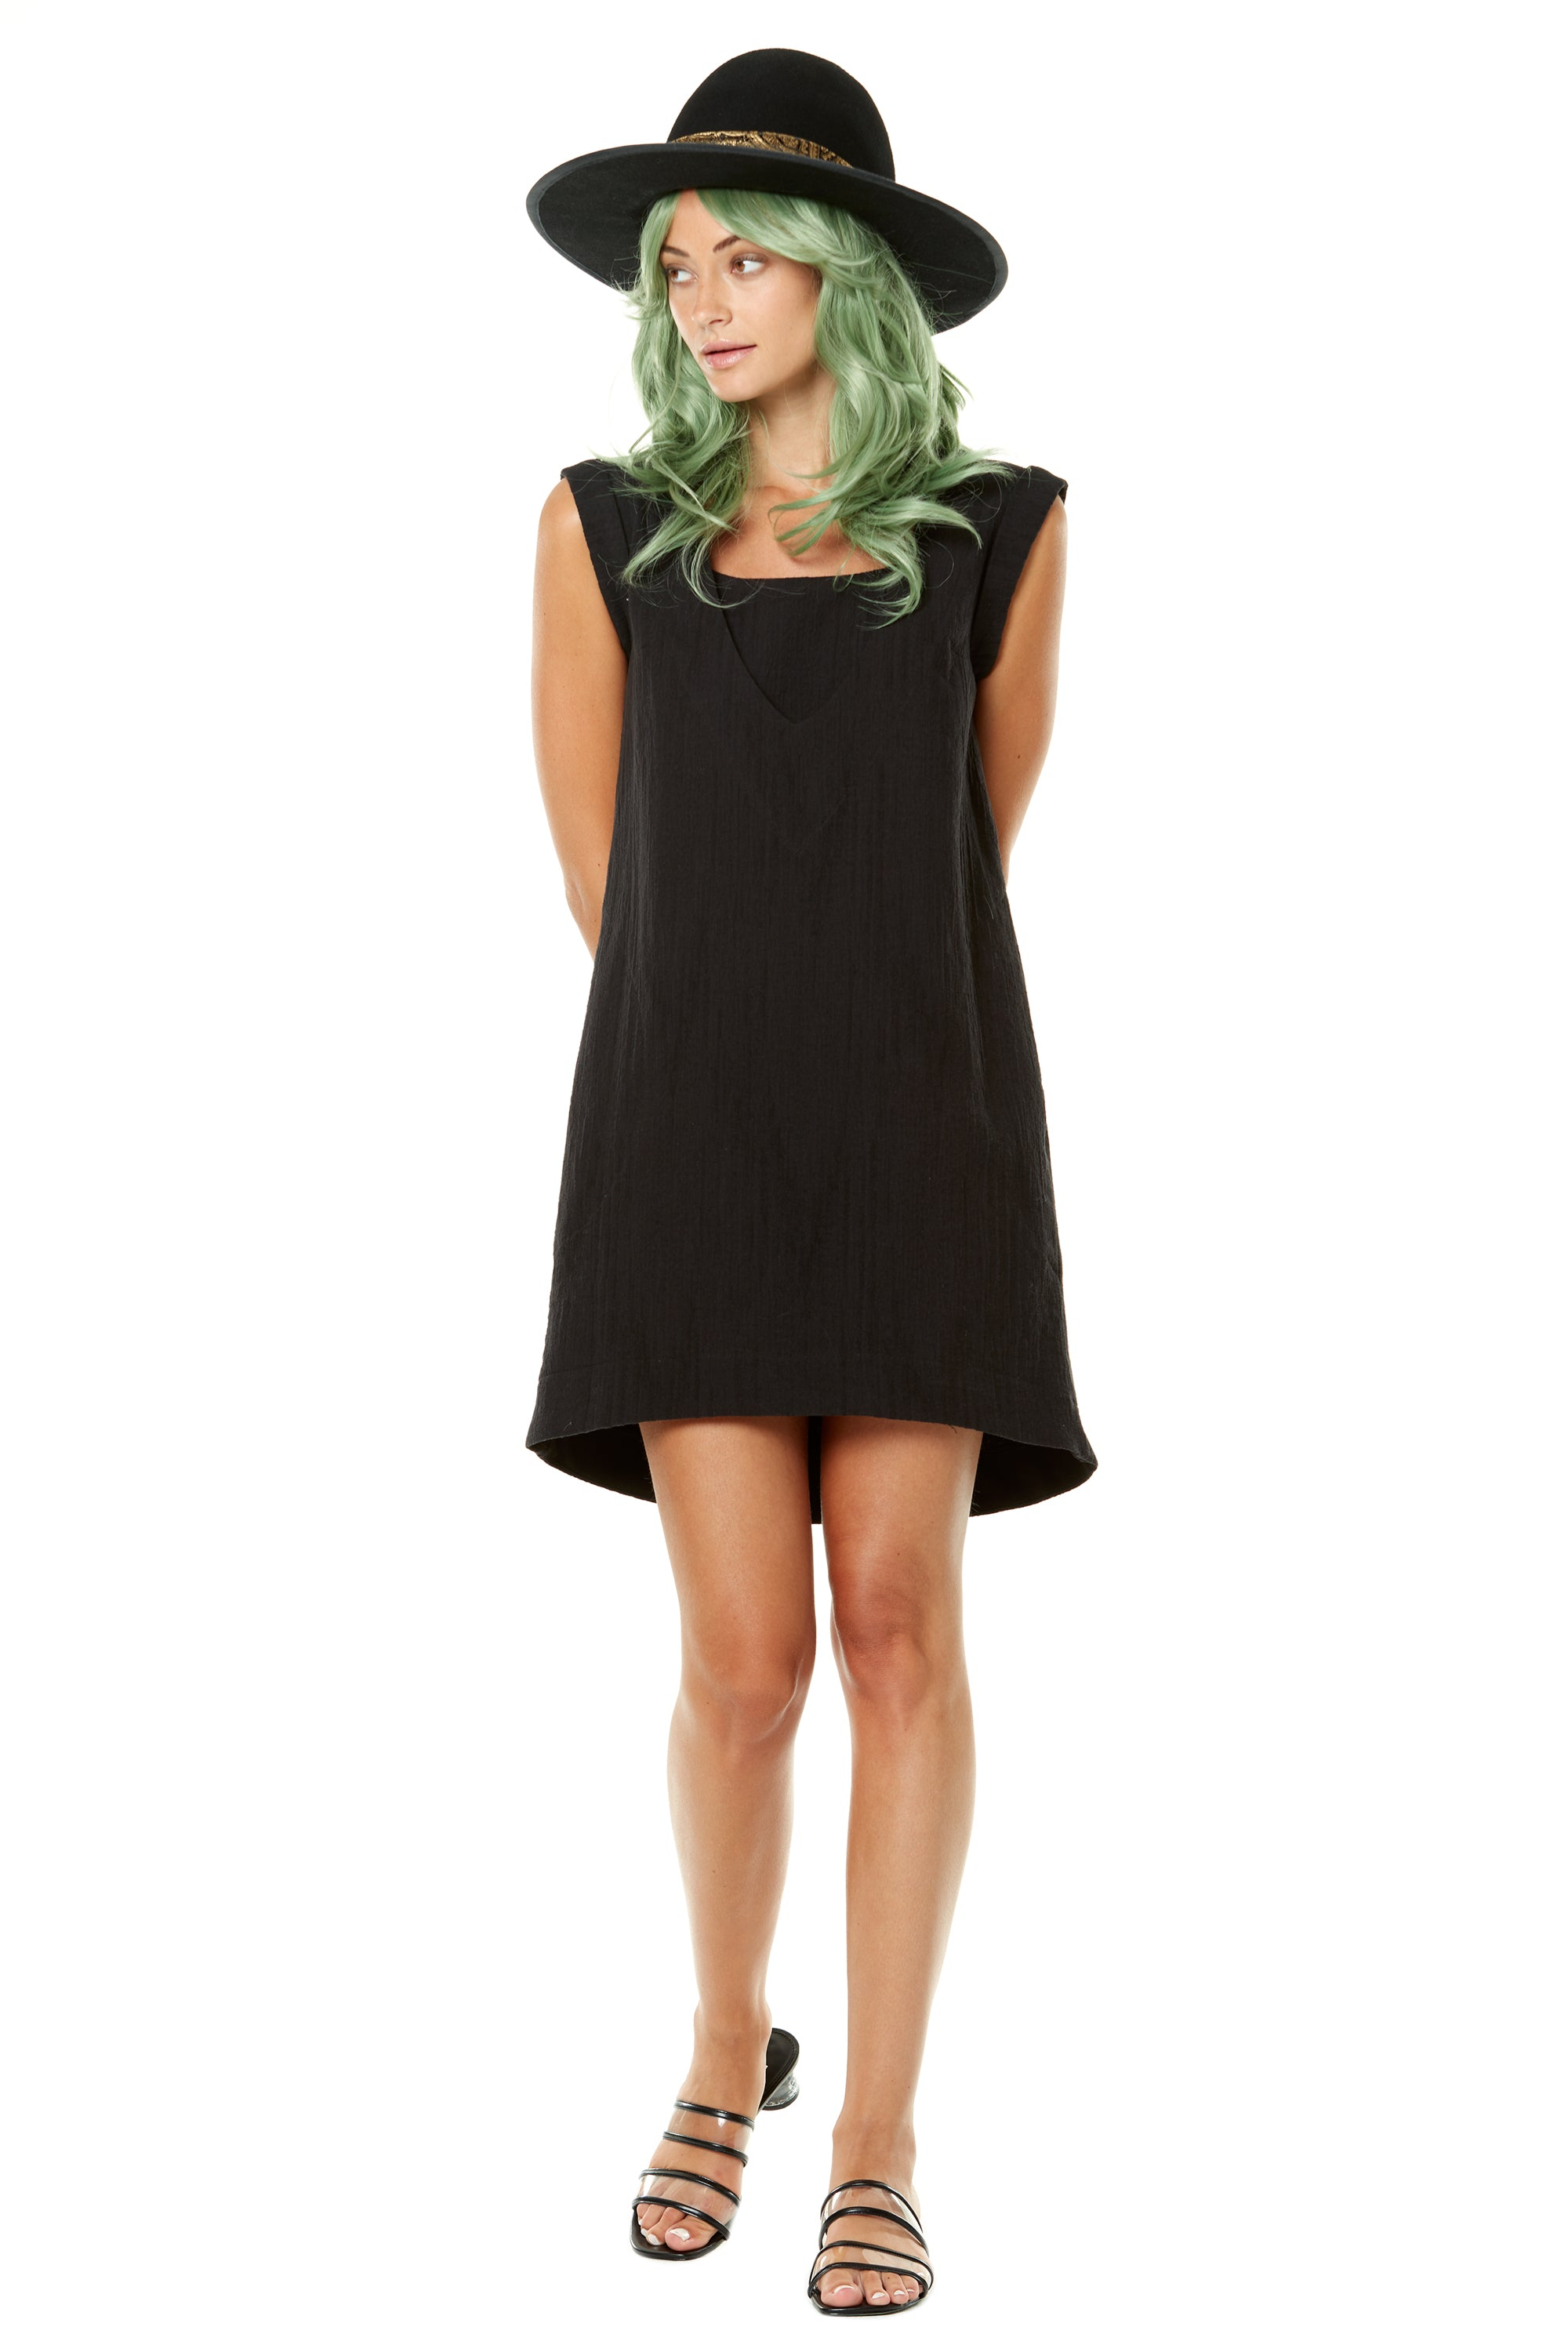 Gin-Gins Dress by Annie 50, black, cap sleeves, square neck, cotton-linen crepe, high-low hemline, sizes XS to L, made in Quebec